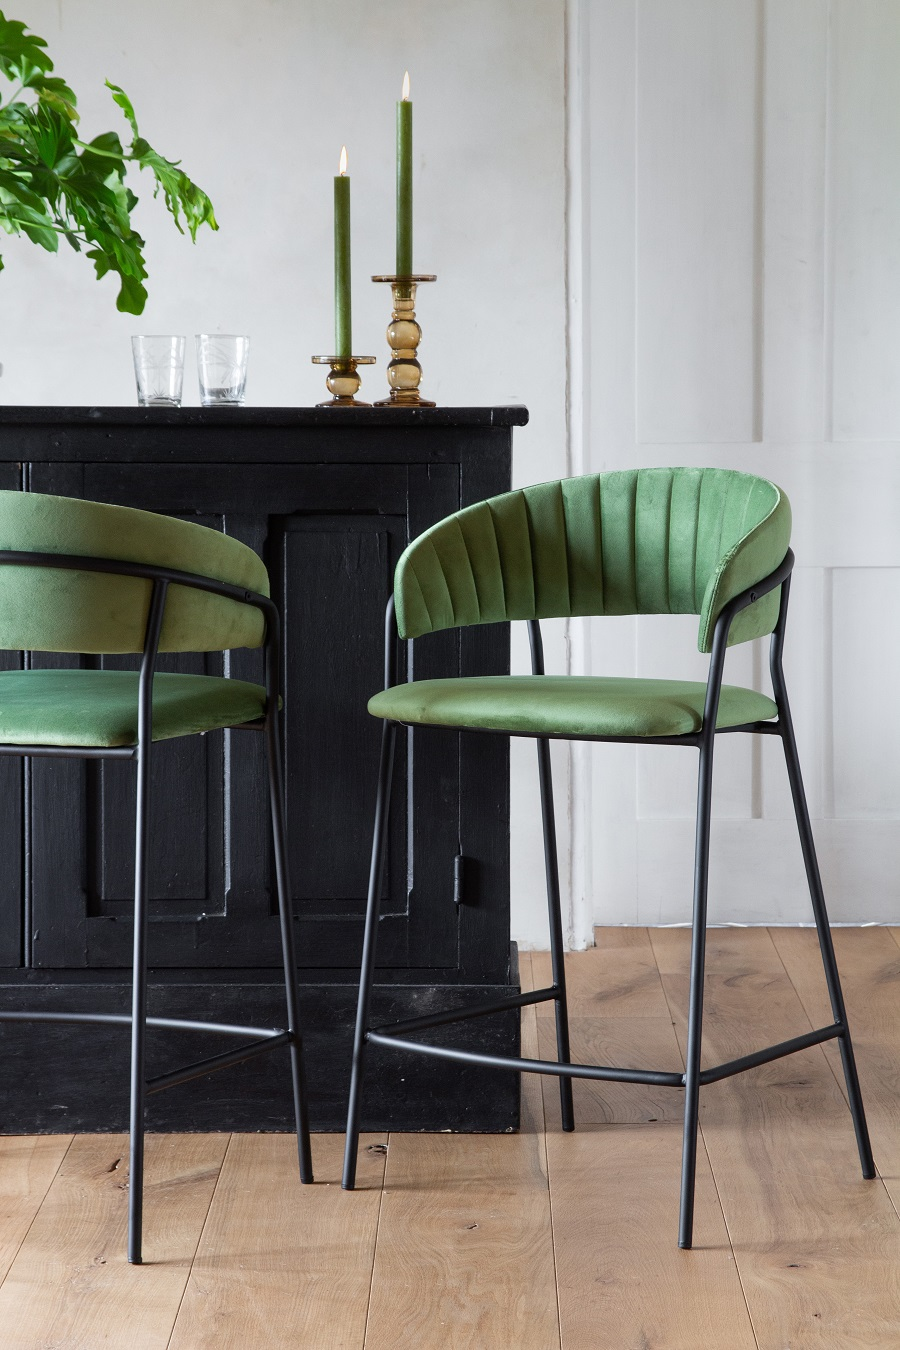 How to Incorporate Emerald Green into Your Home